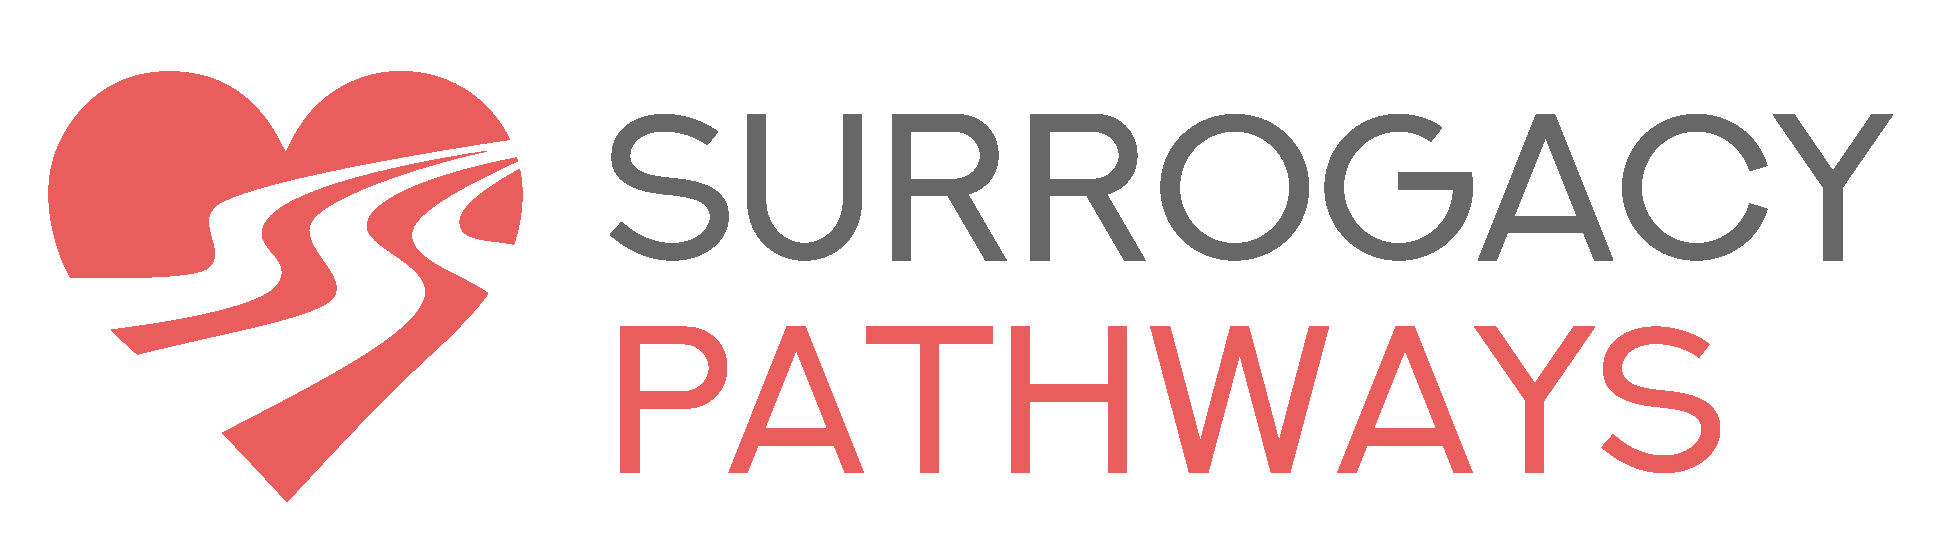 Surrogacy Pathways